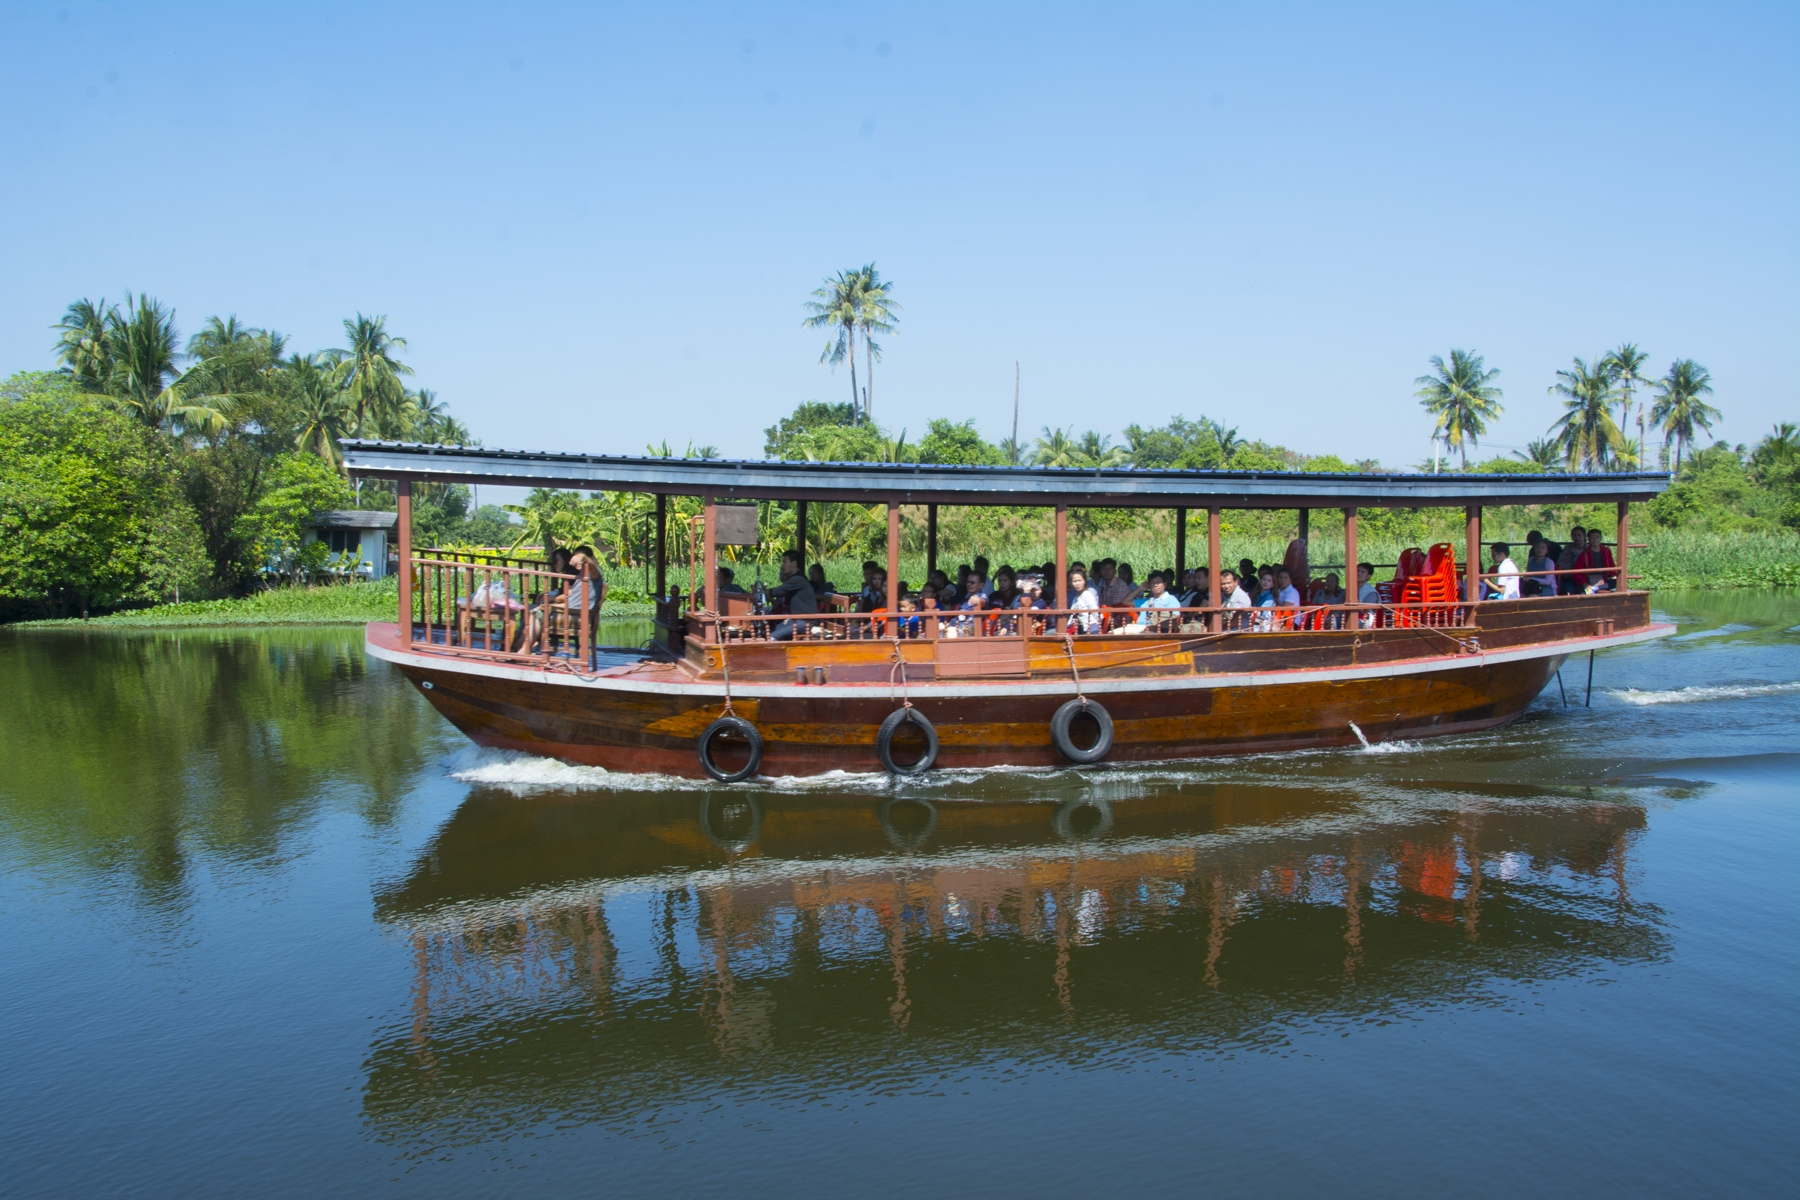 This sight seeing barge on the Tachin River is similar to what Khun Kanitha started with for her dinner boat